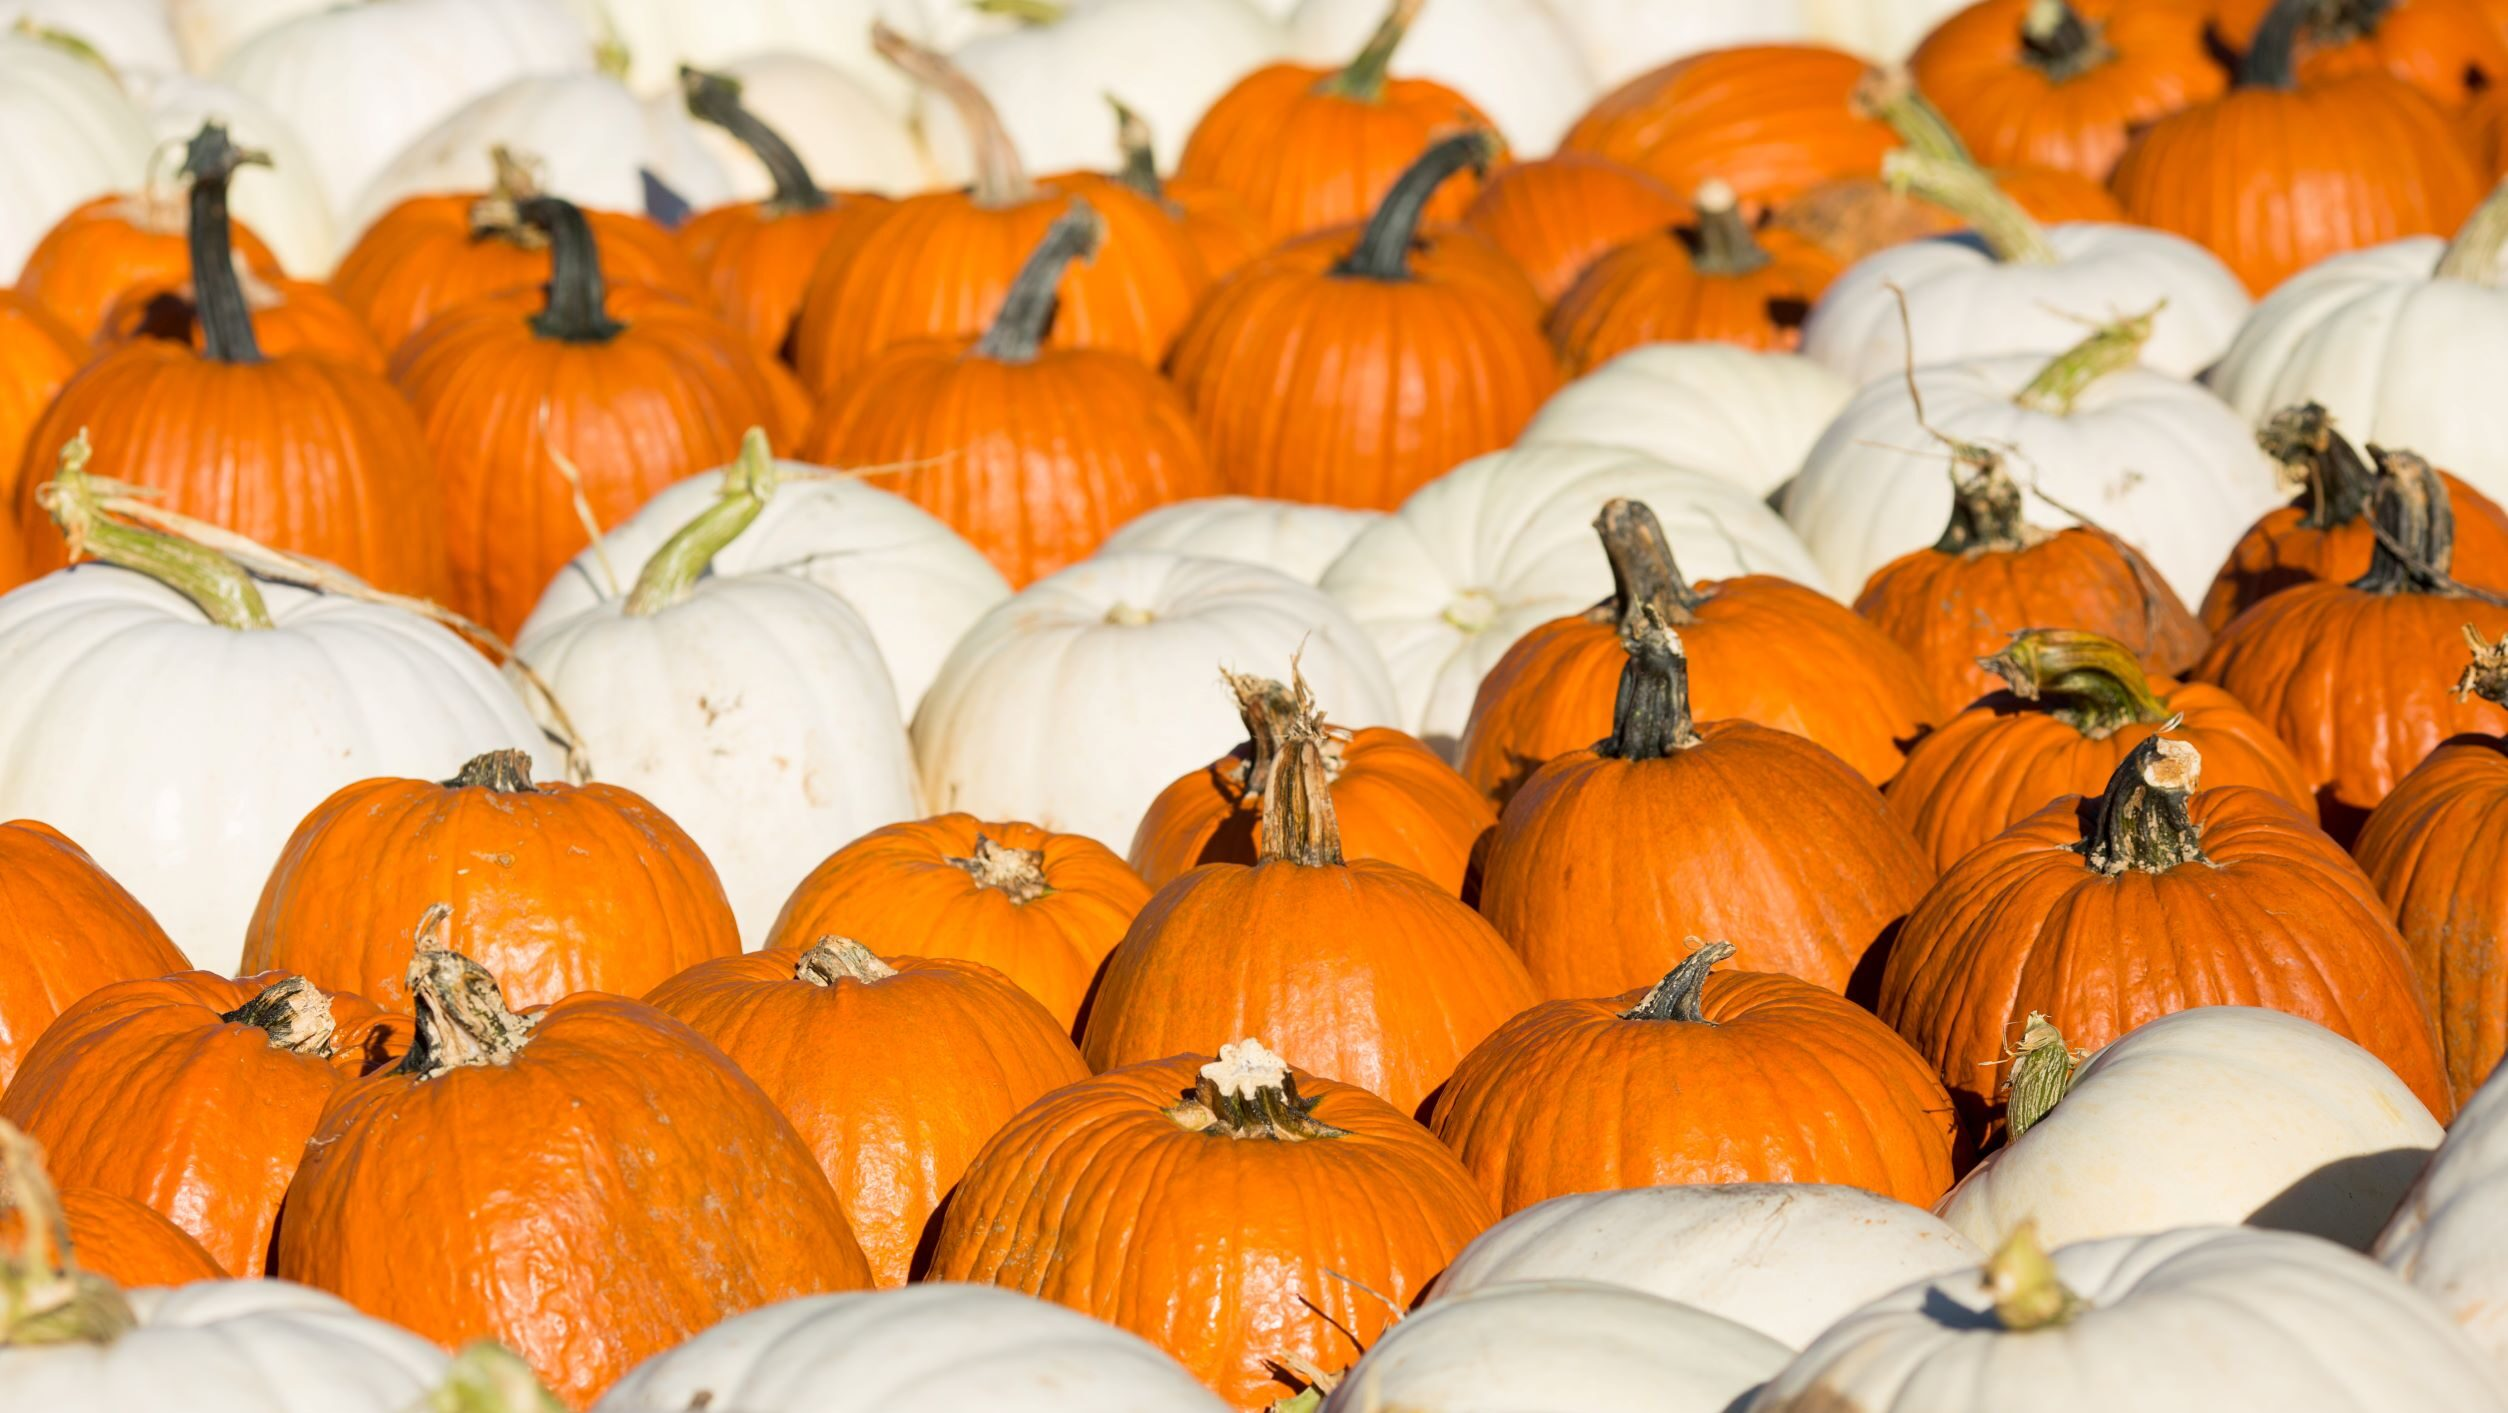 Pumpkin patch with orange and white pumpkins